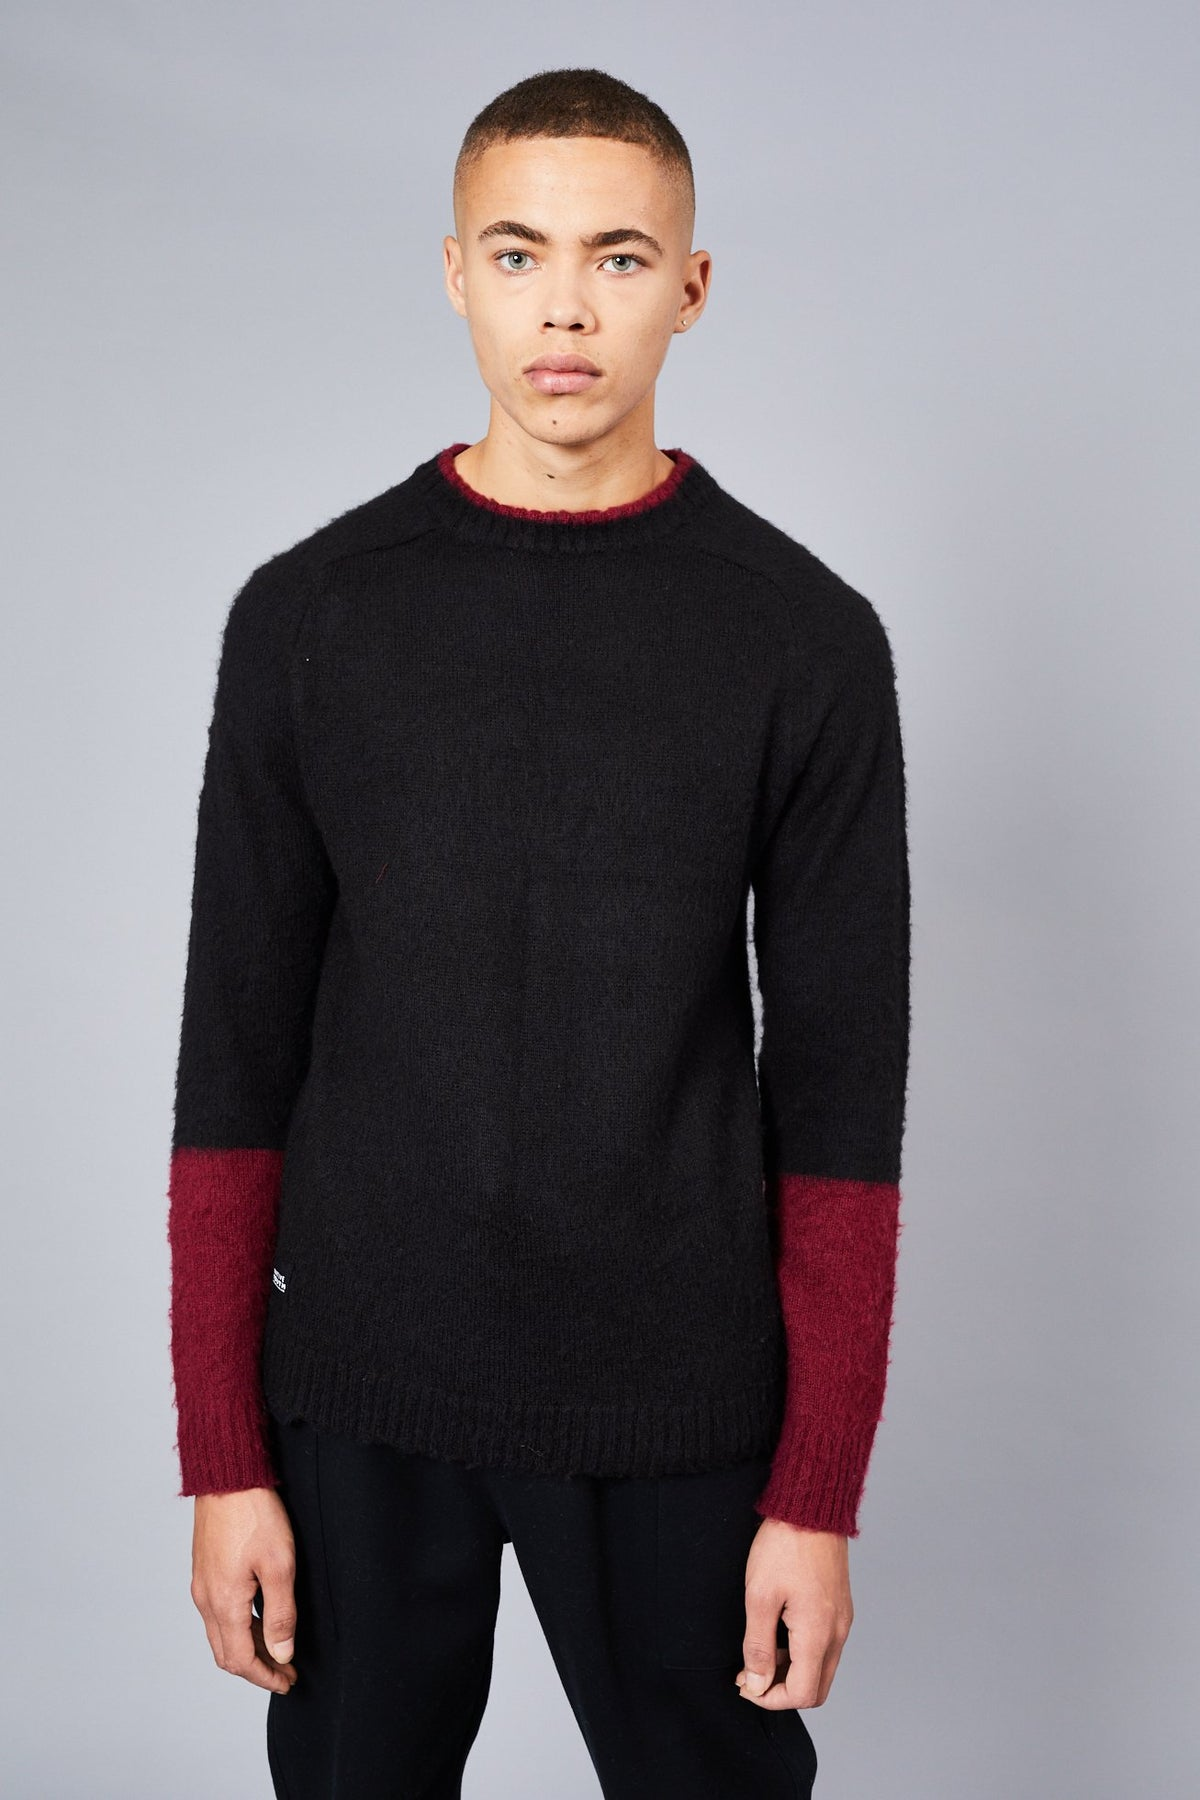 HABRE SWEATER